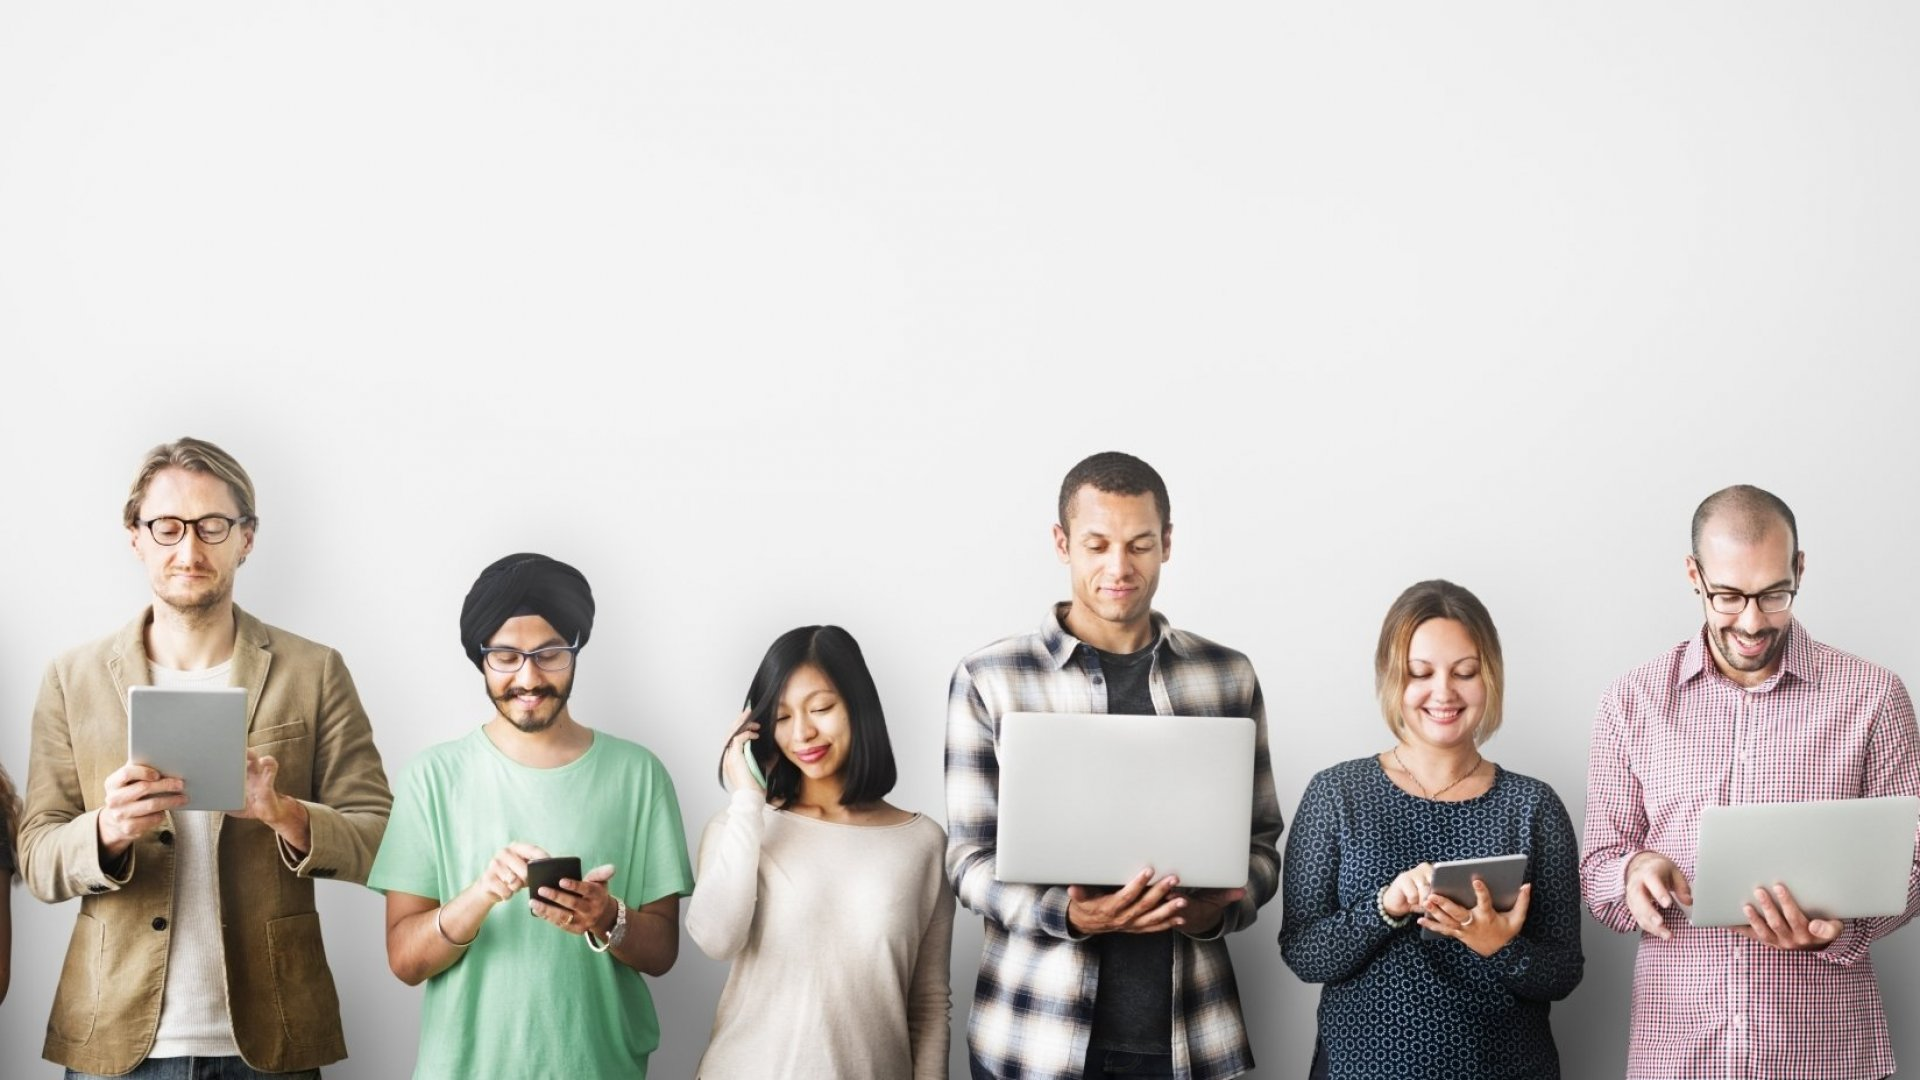 4 Ways to Attract, Retain and Engage Employees